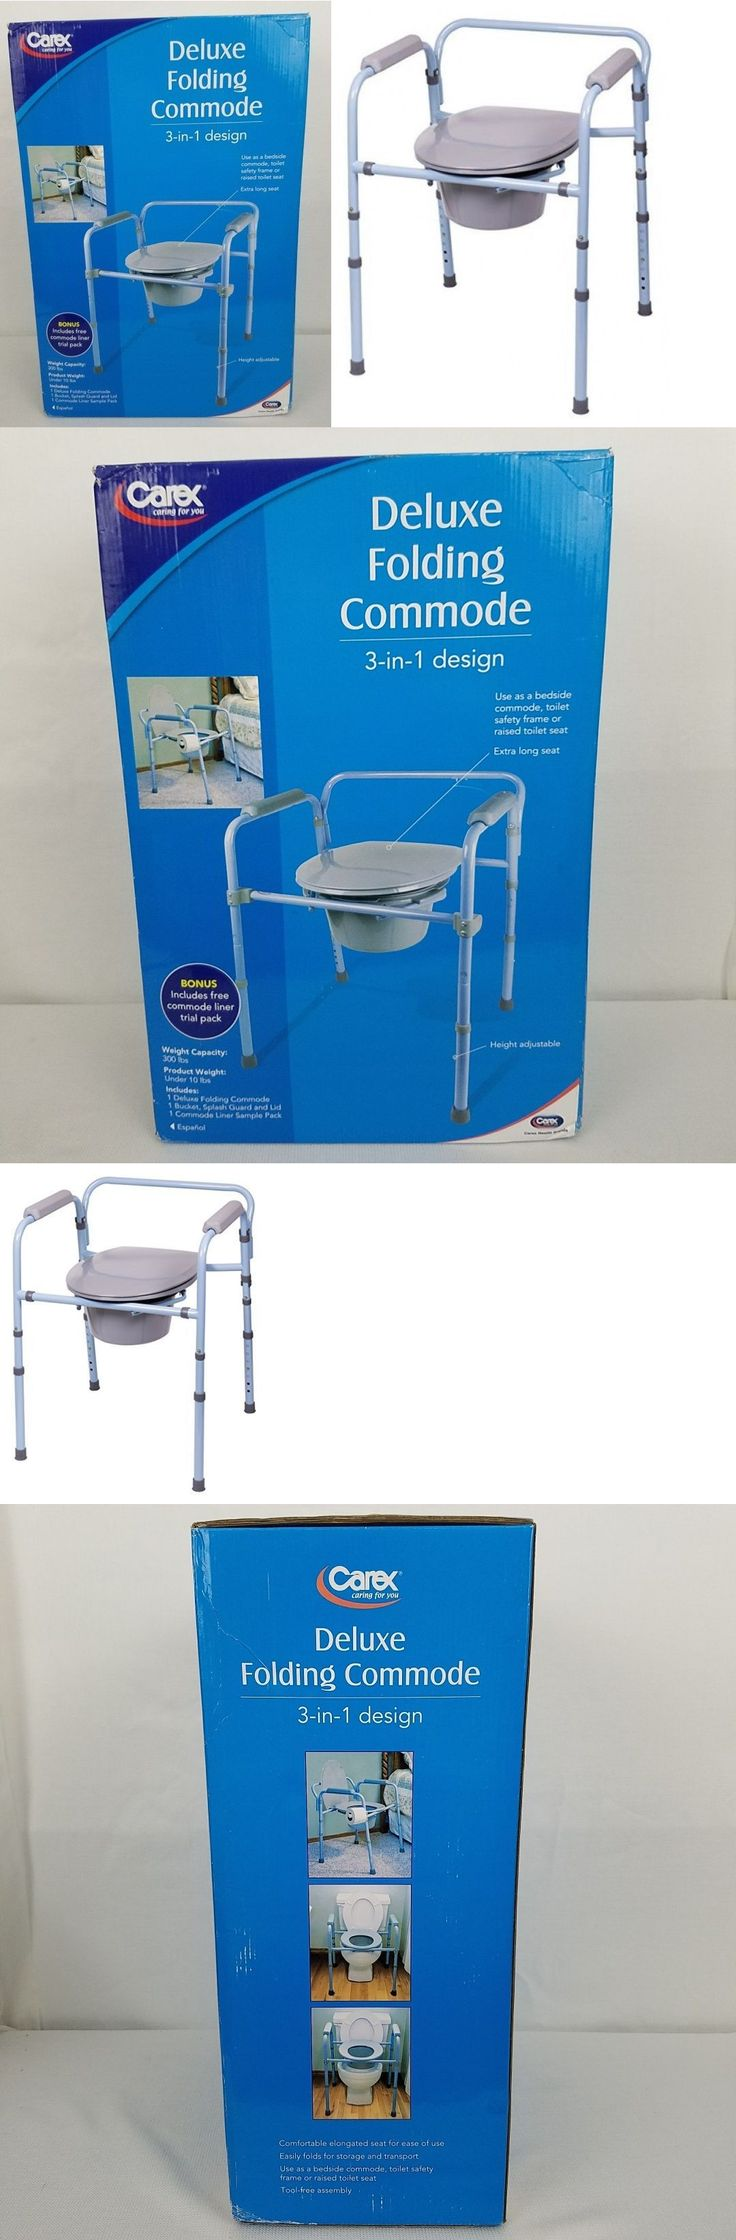 Portable commode folding bedside handicap adult toilet potty chair - Toilet Frames And Commodes Carex Deluxe Folding Commode 3 In 1 Design X Long